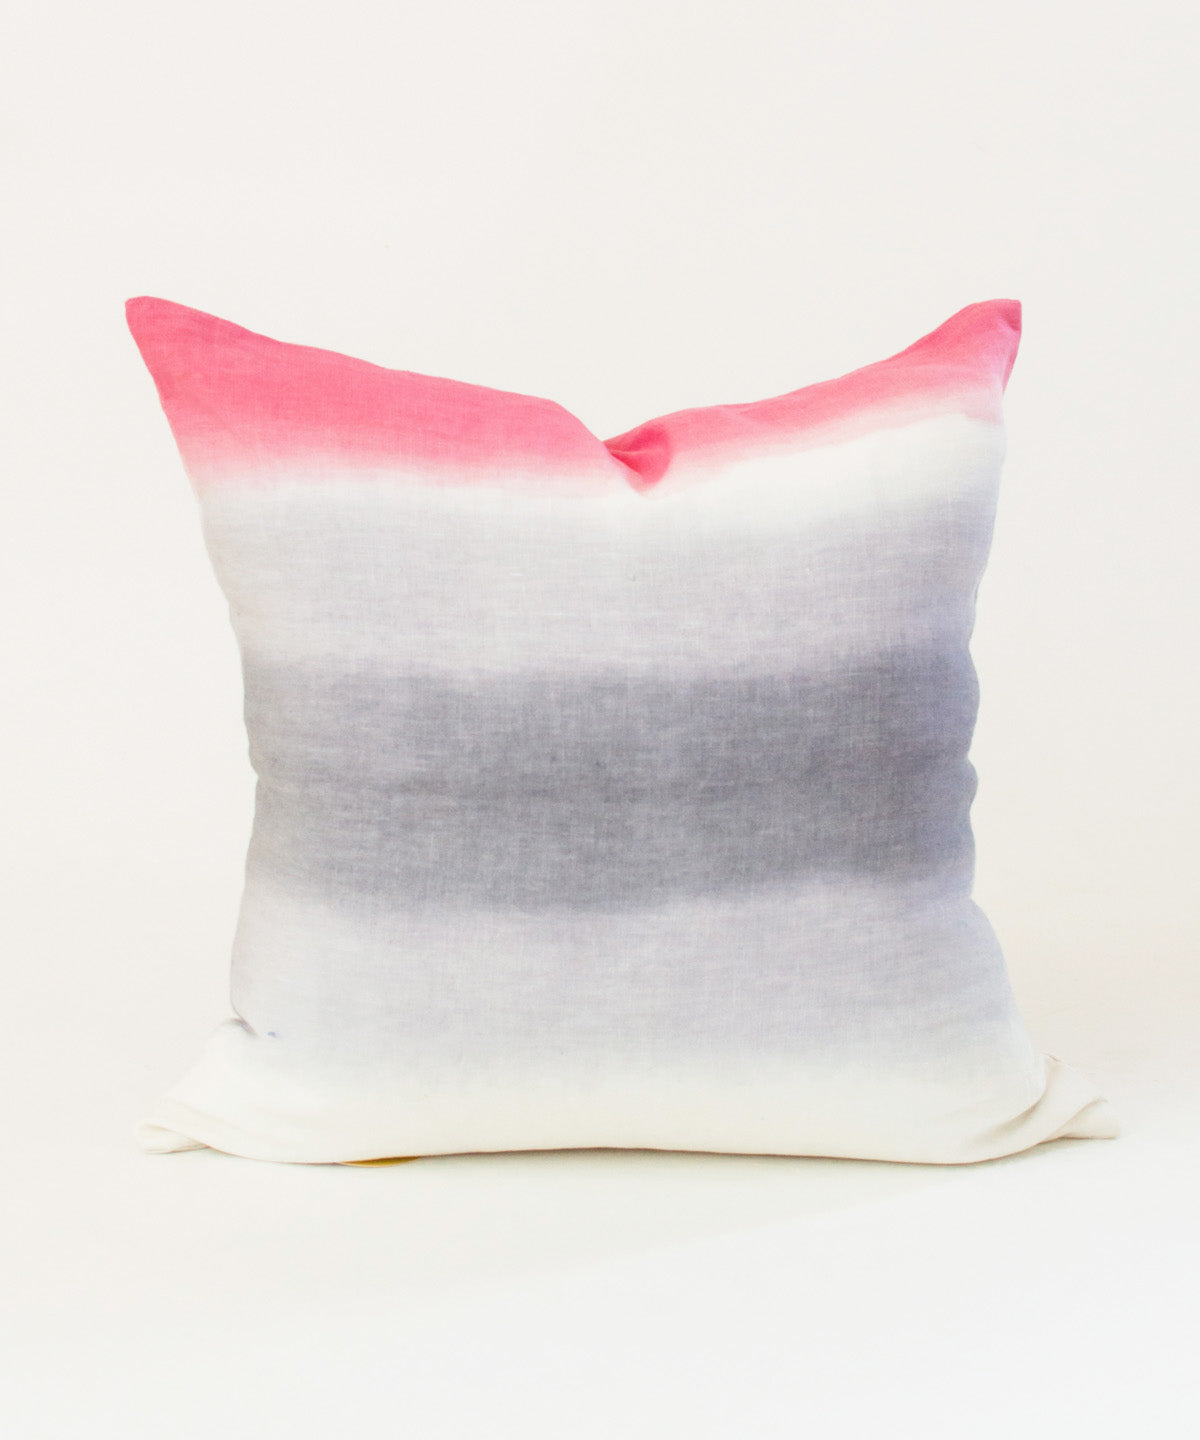 Grayscale Pillow - Sister Golden